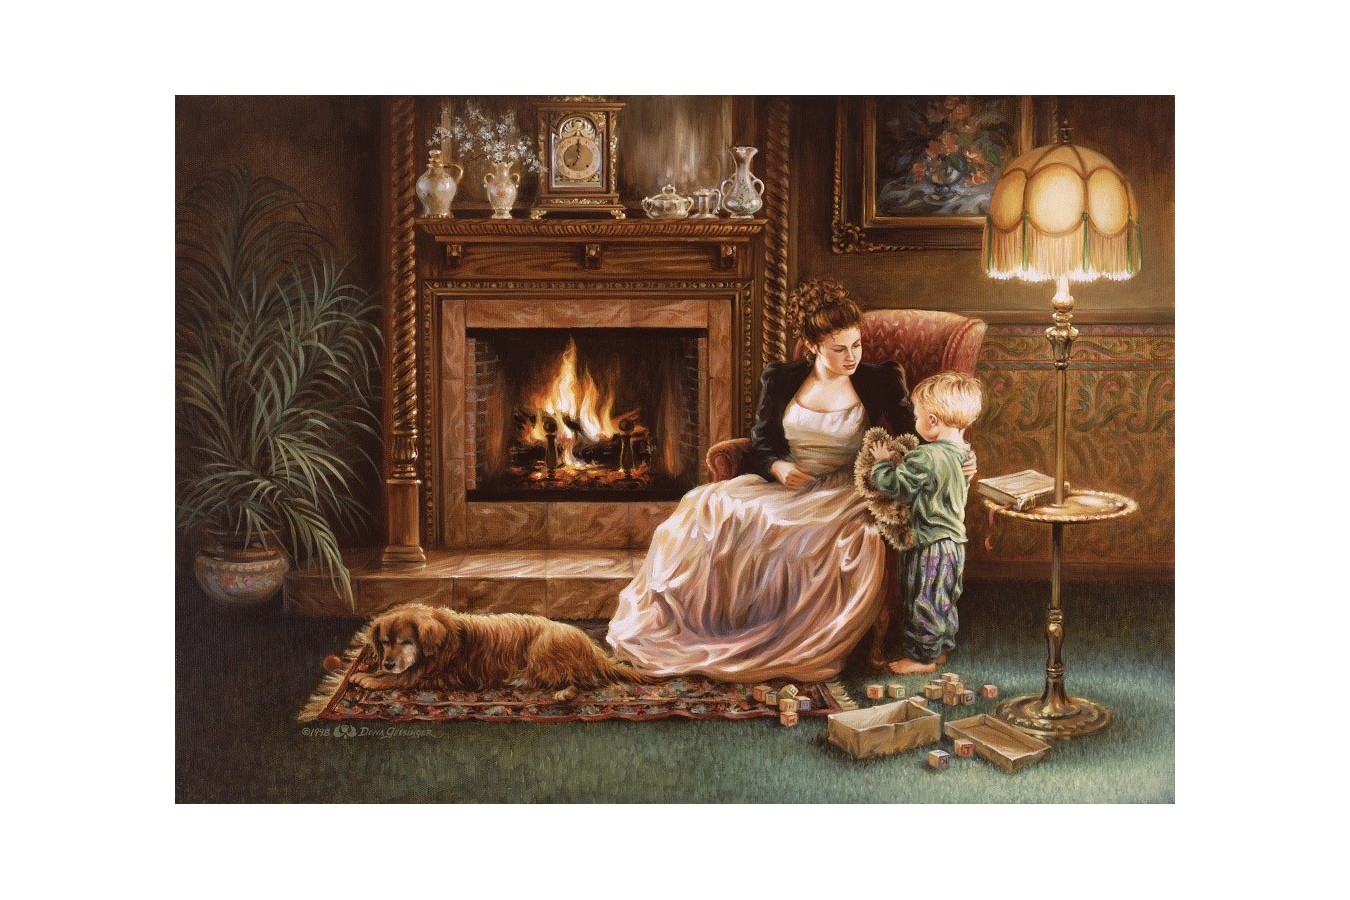 Puzzle Art Puzzle - Dona Gelsinger: Serenity by the Fireplace, 1500 piese (Art-Puzzle-4614) imagine